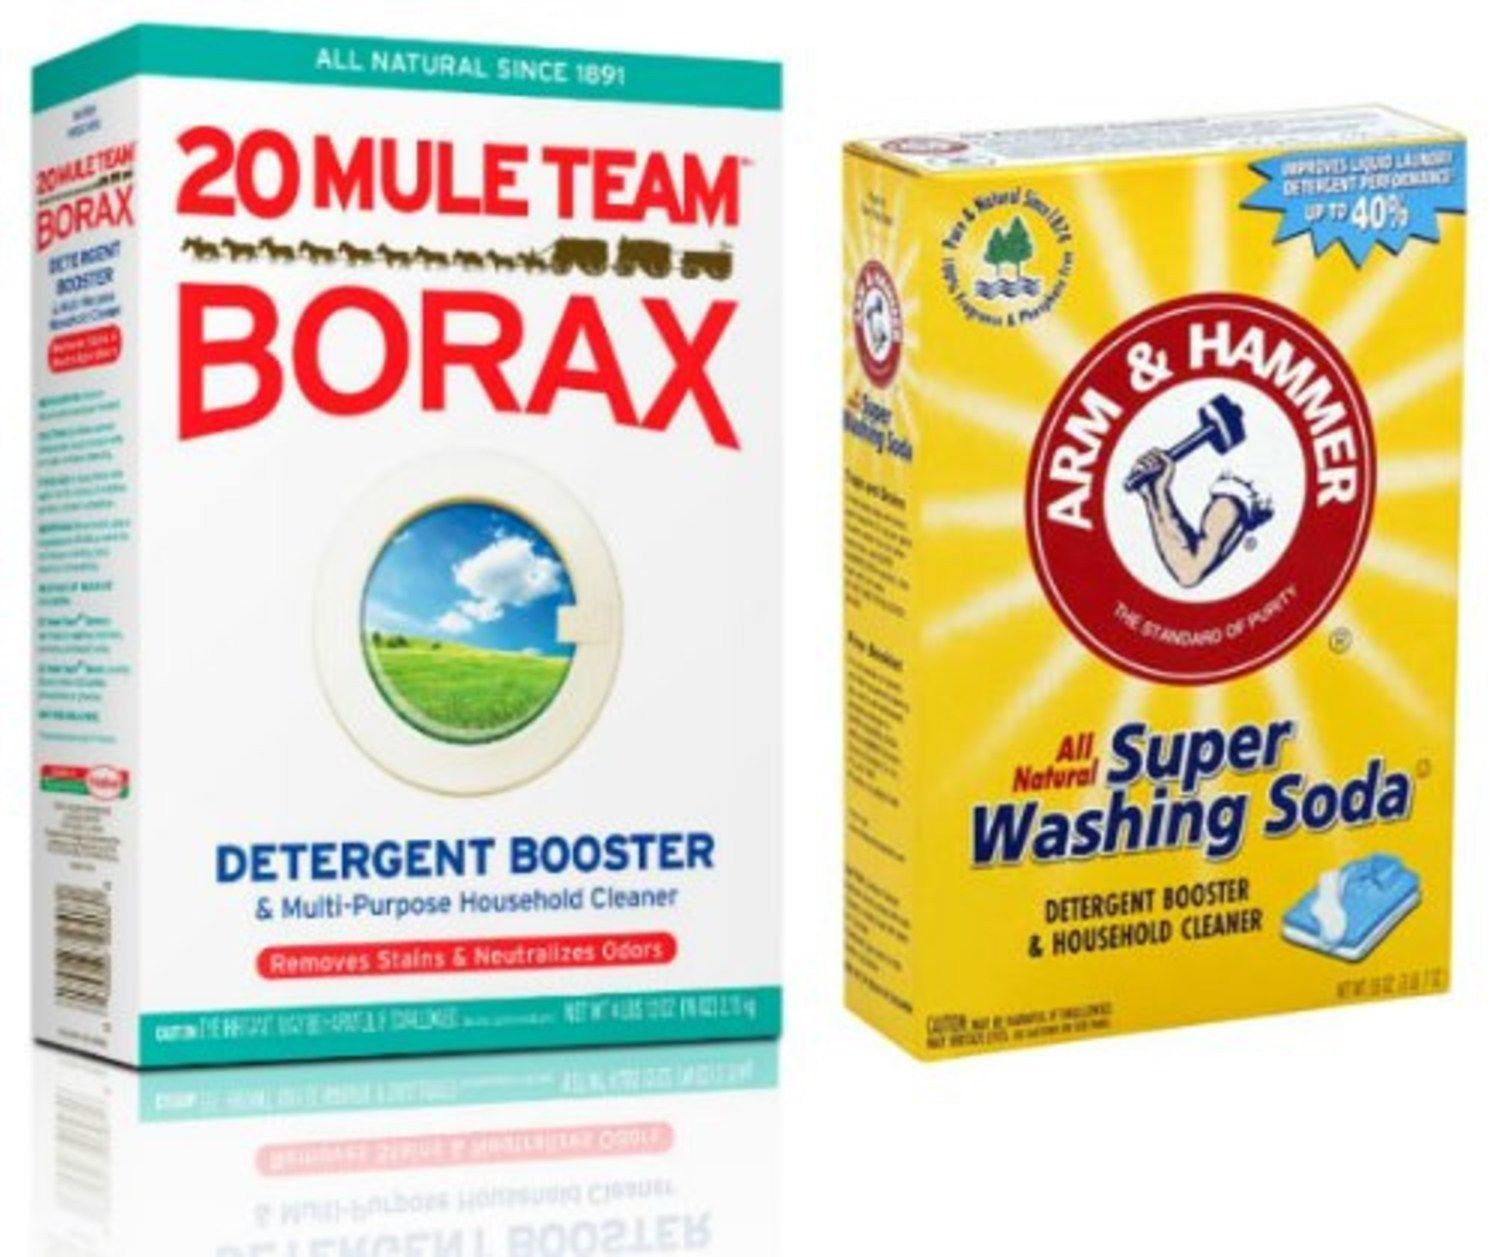 Mule Team Borax Laundry Detergents Ebay Home Garden Products